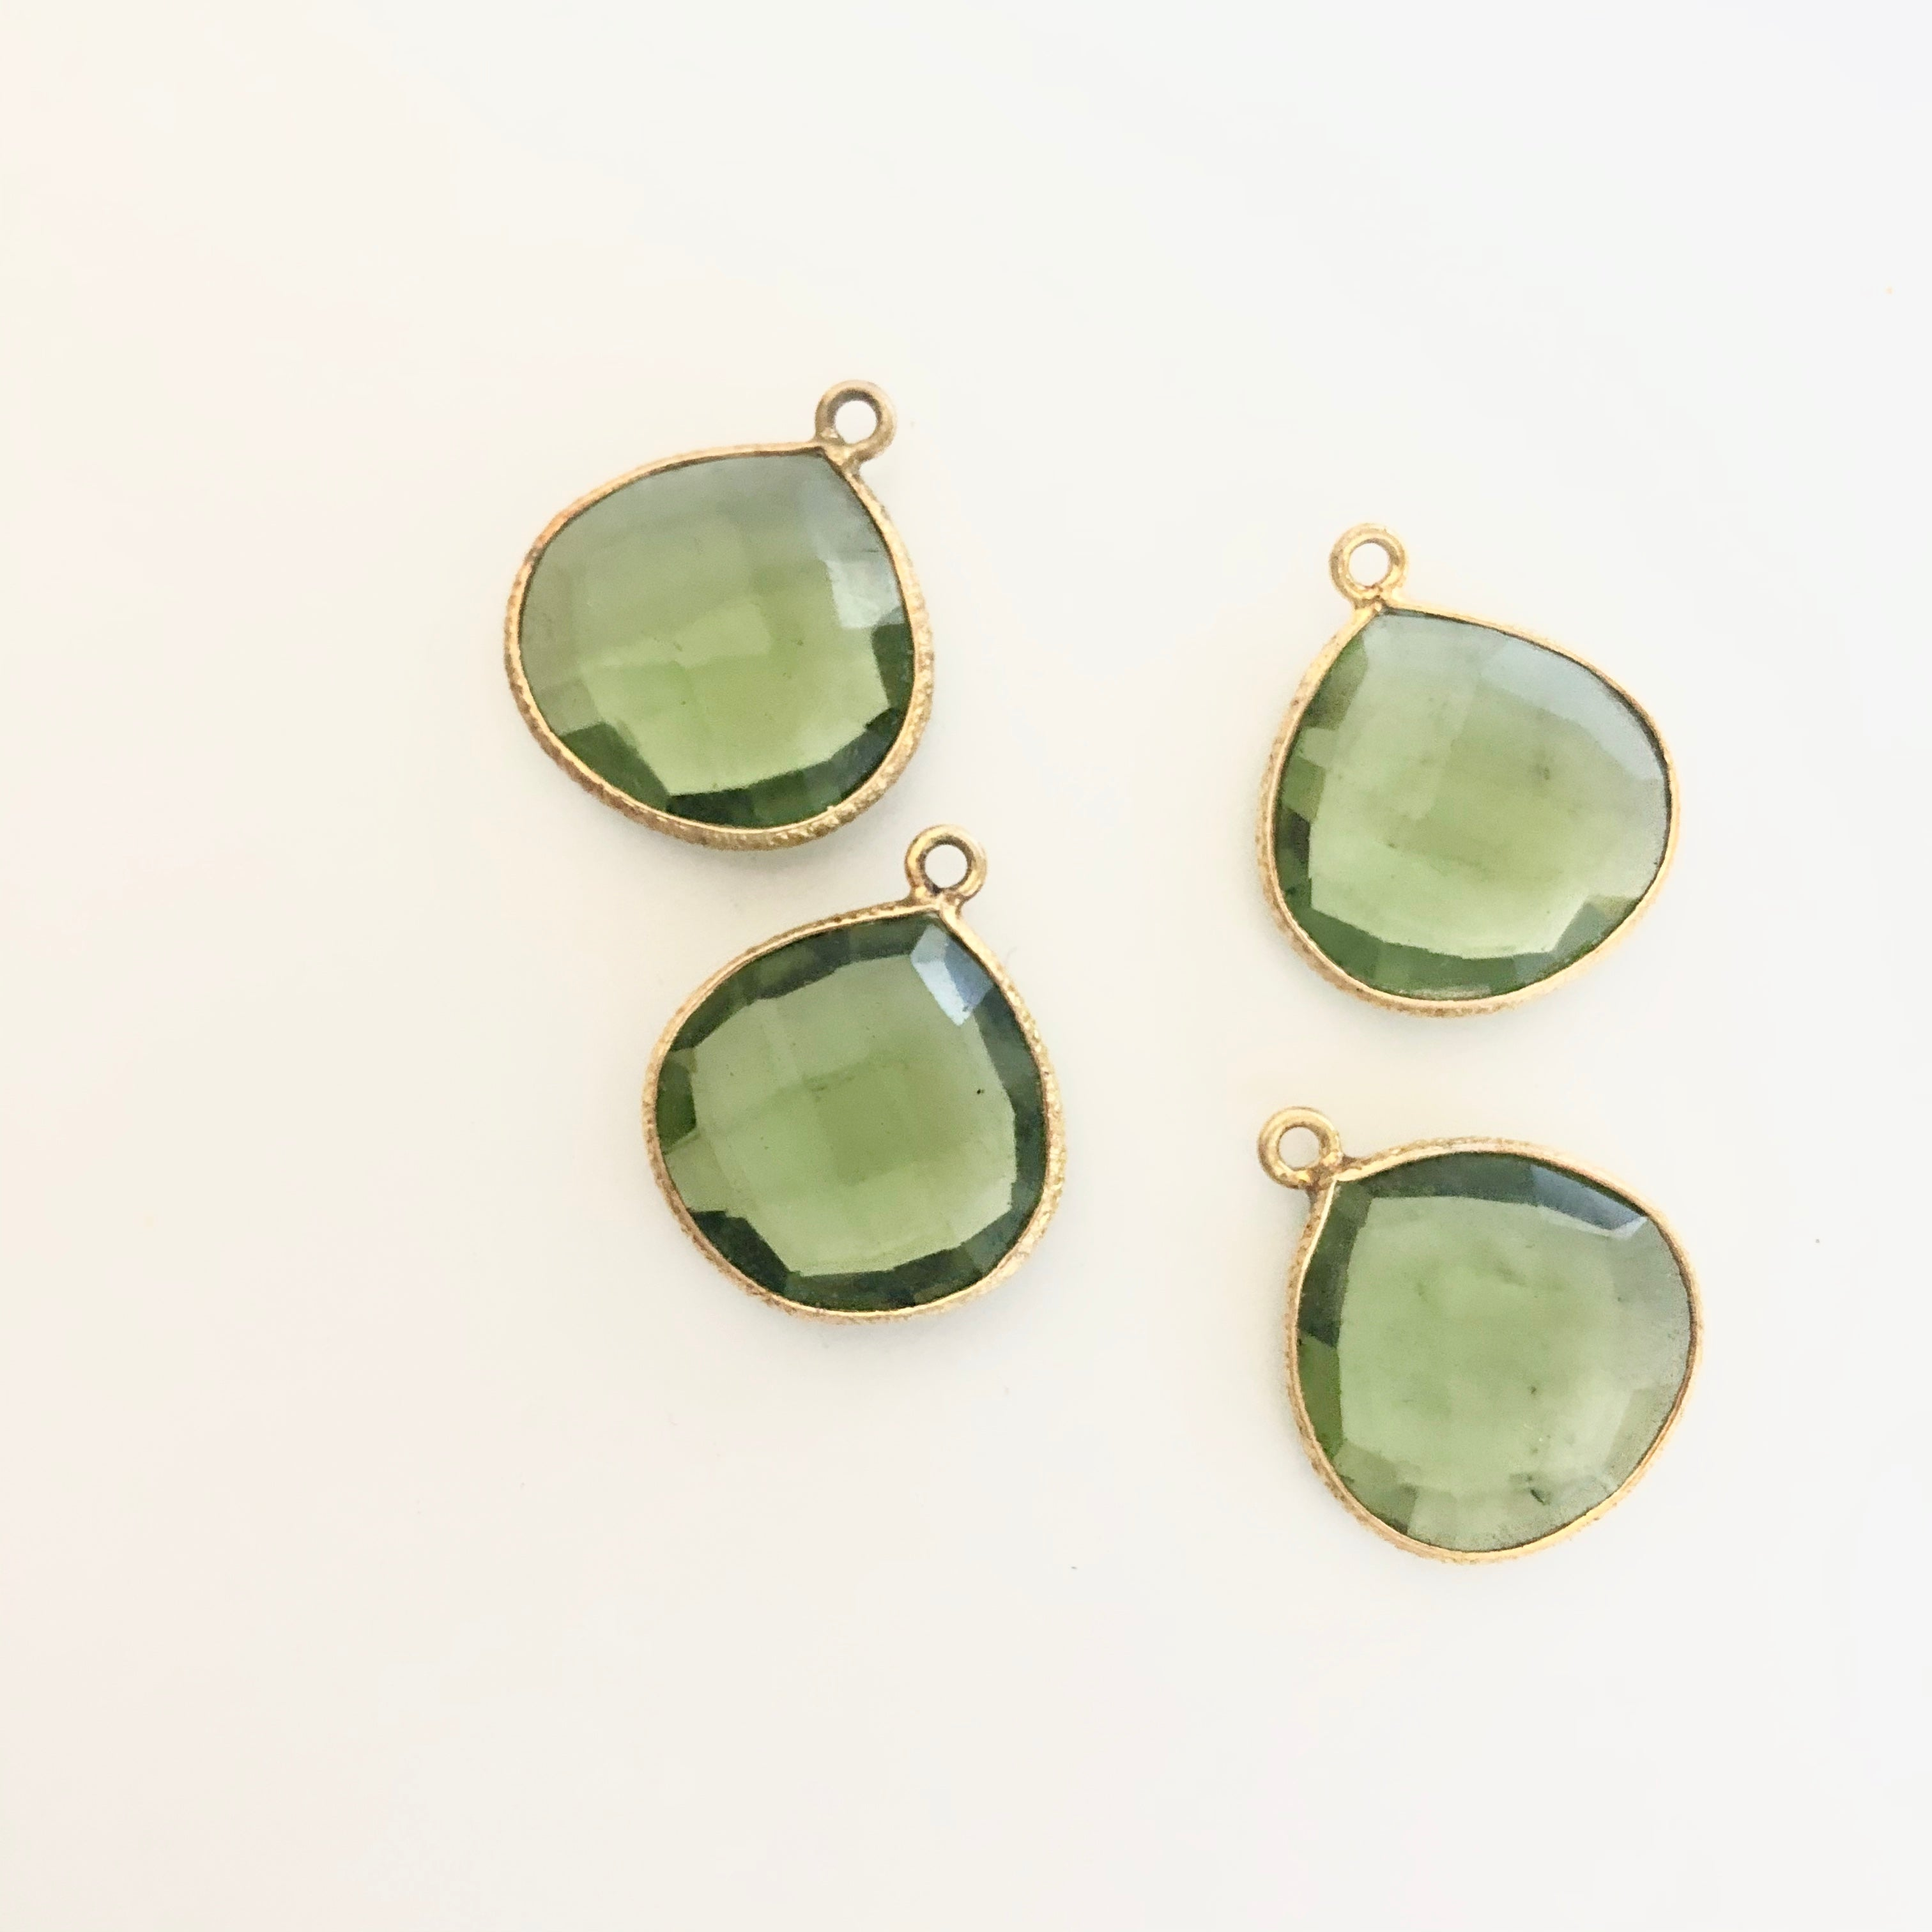 Gemstone Teardrop Charms with Gold plated edge